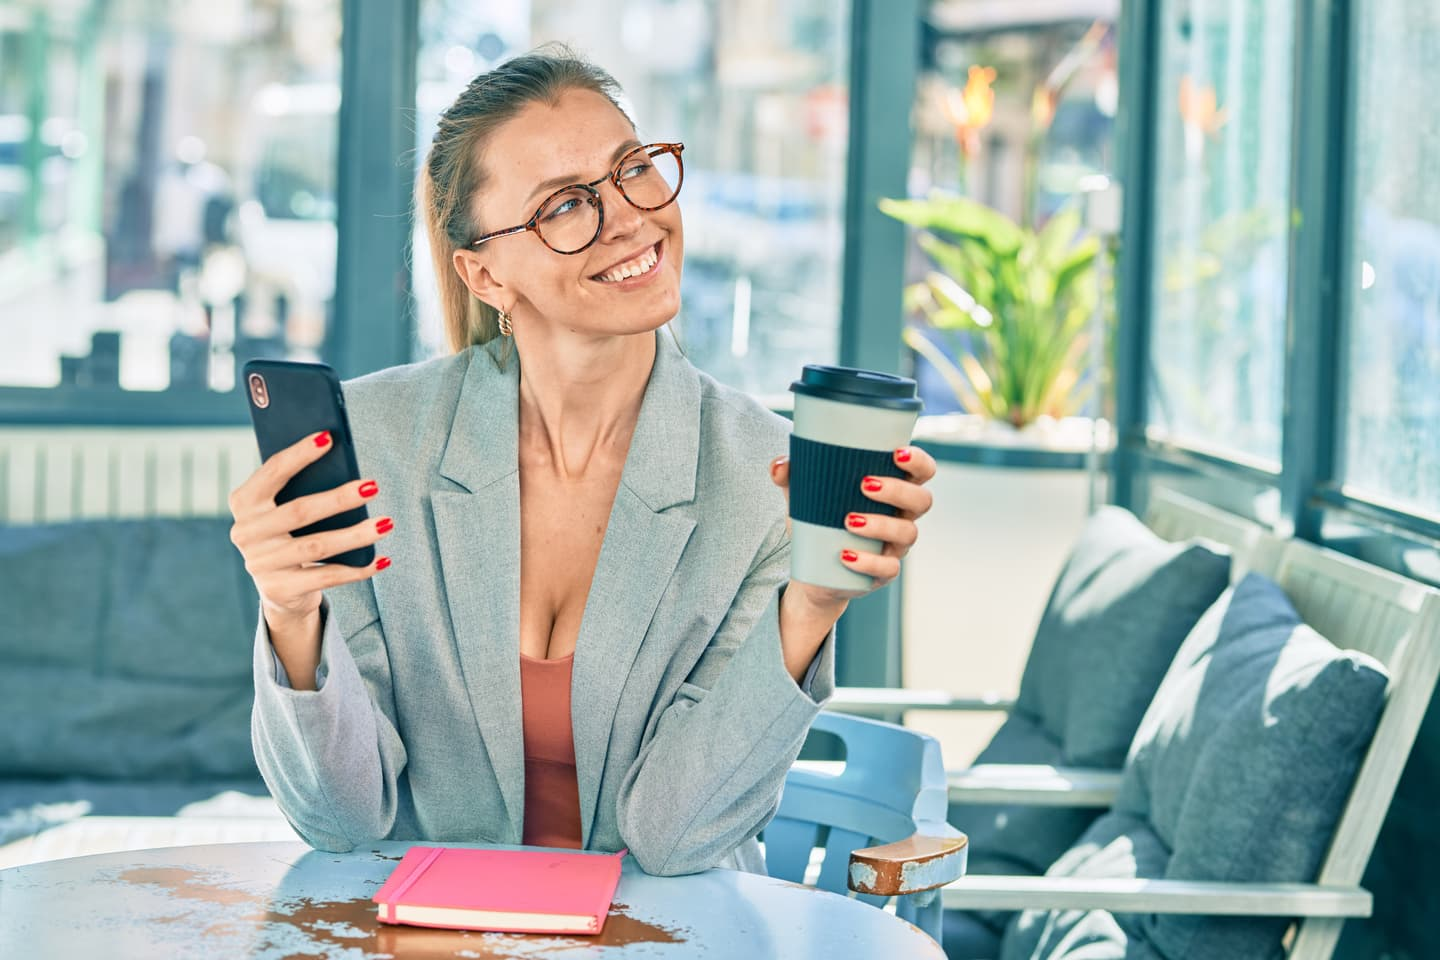 Woman smiling while holding her phone and coffee